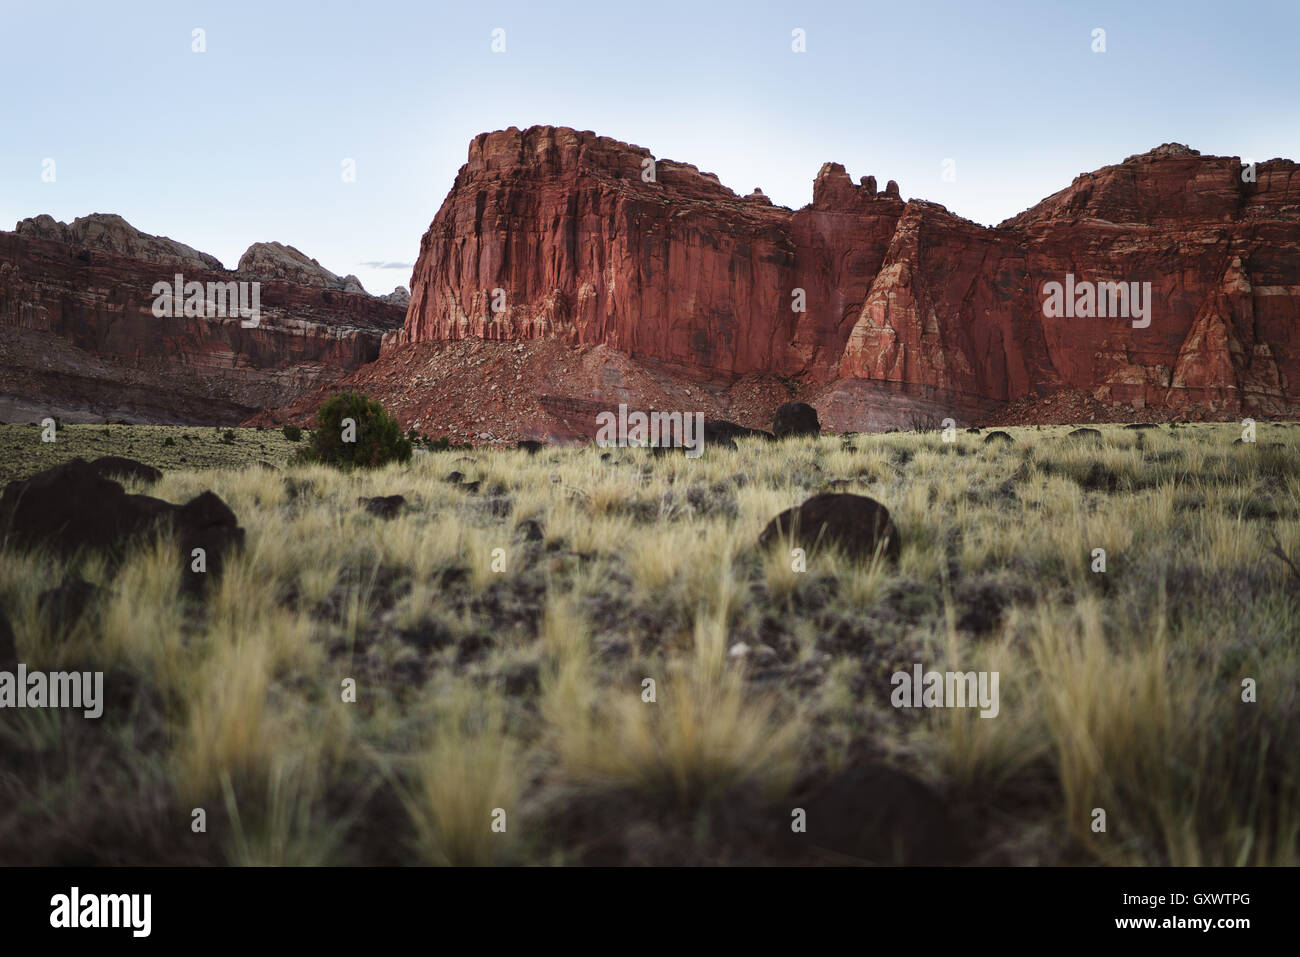 Fremont Gorge in Utah's Capitol Reef National Park - Stock Image